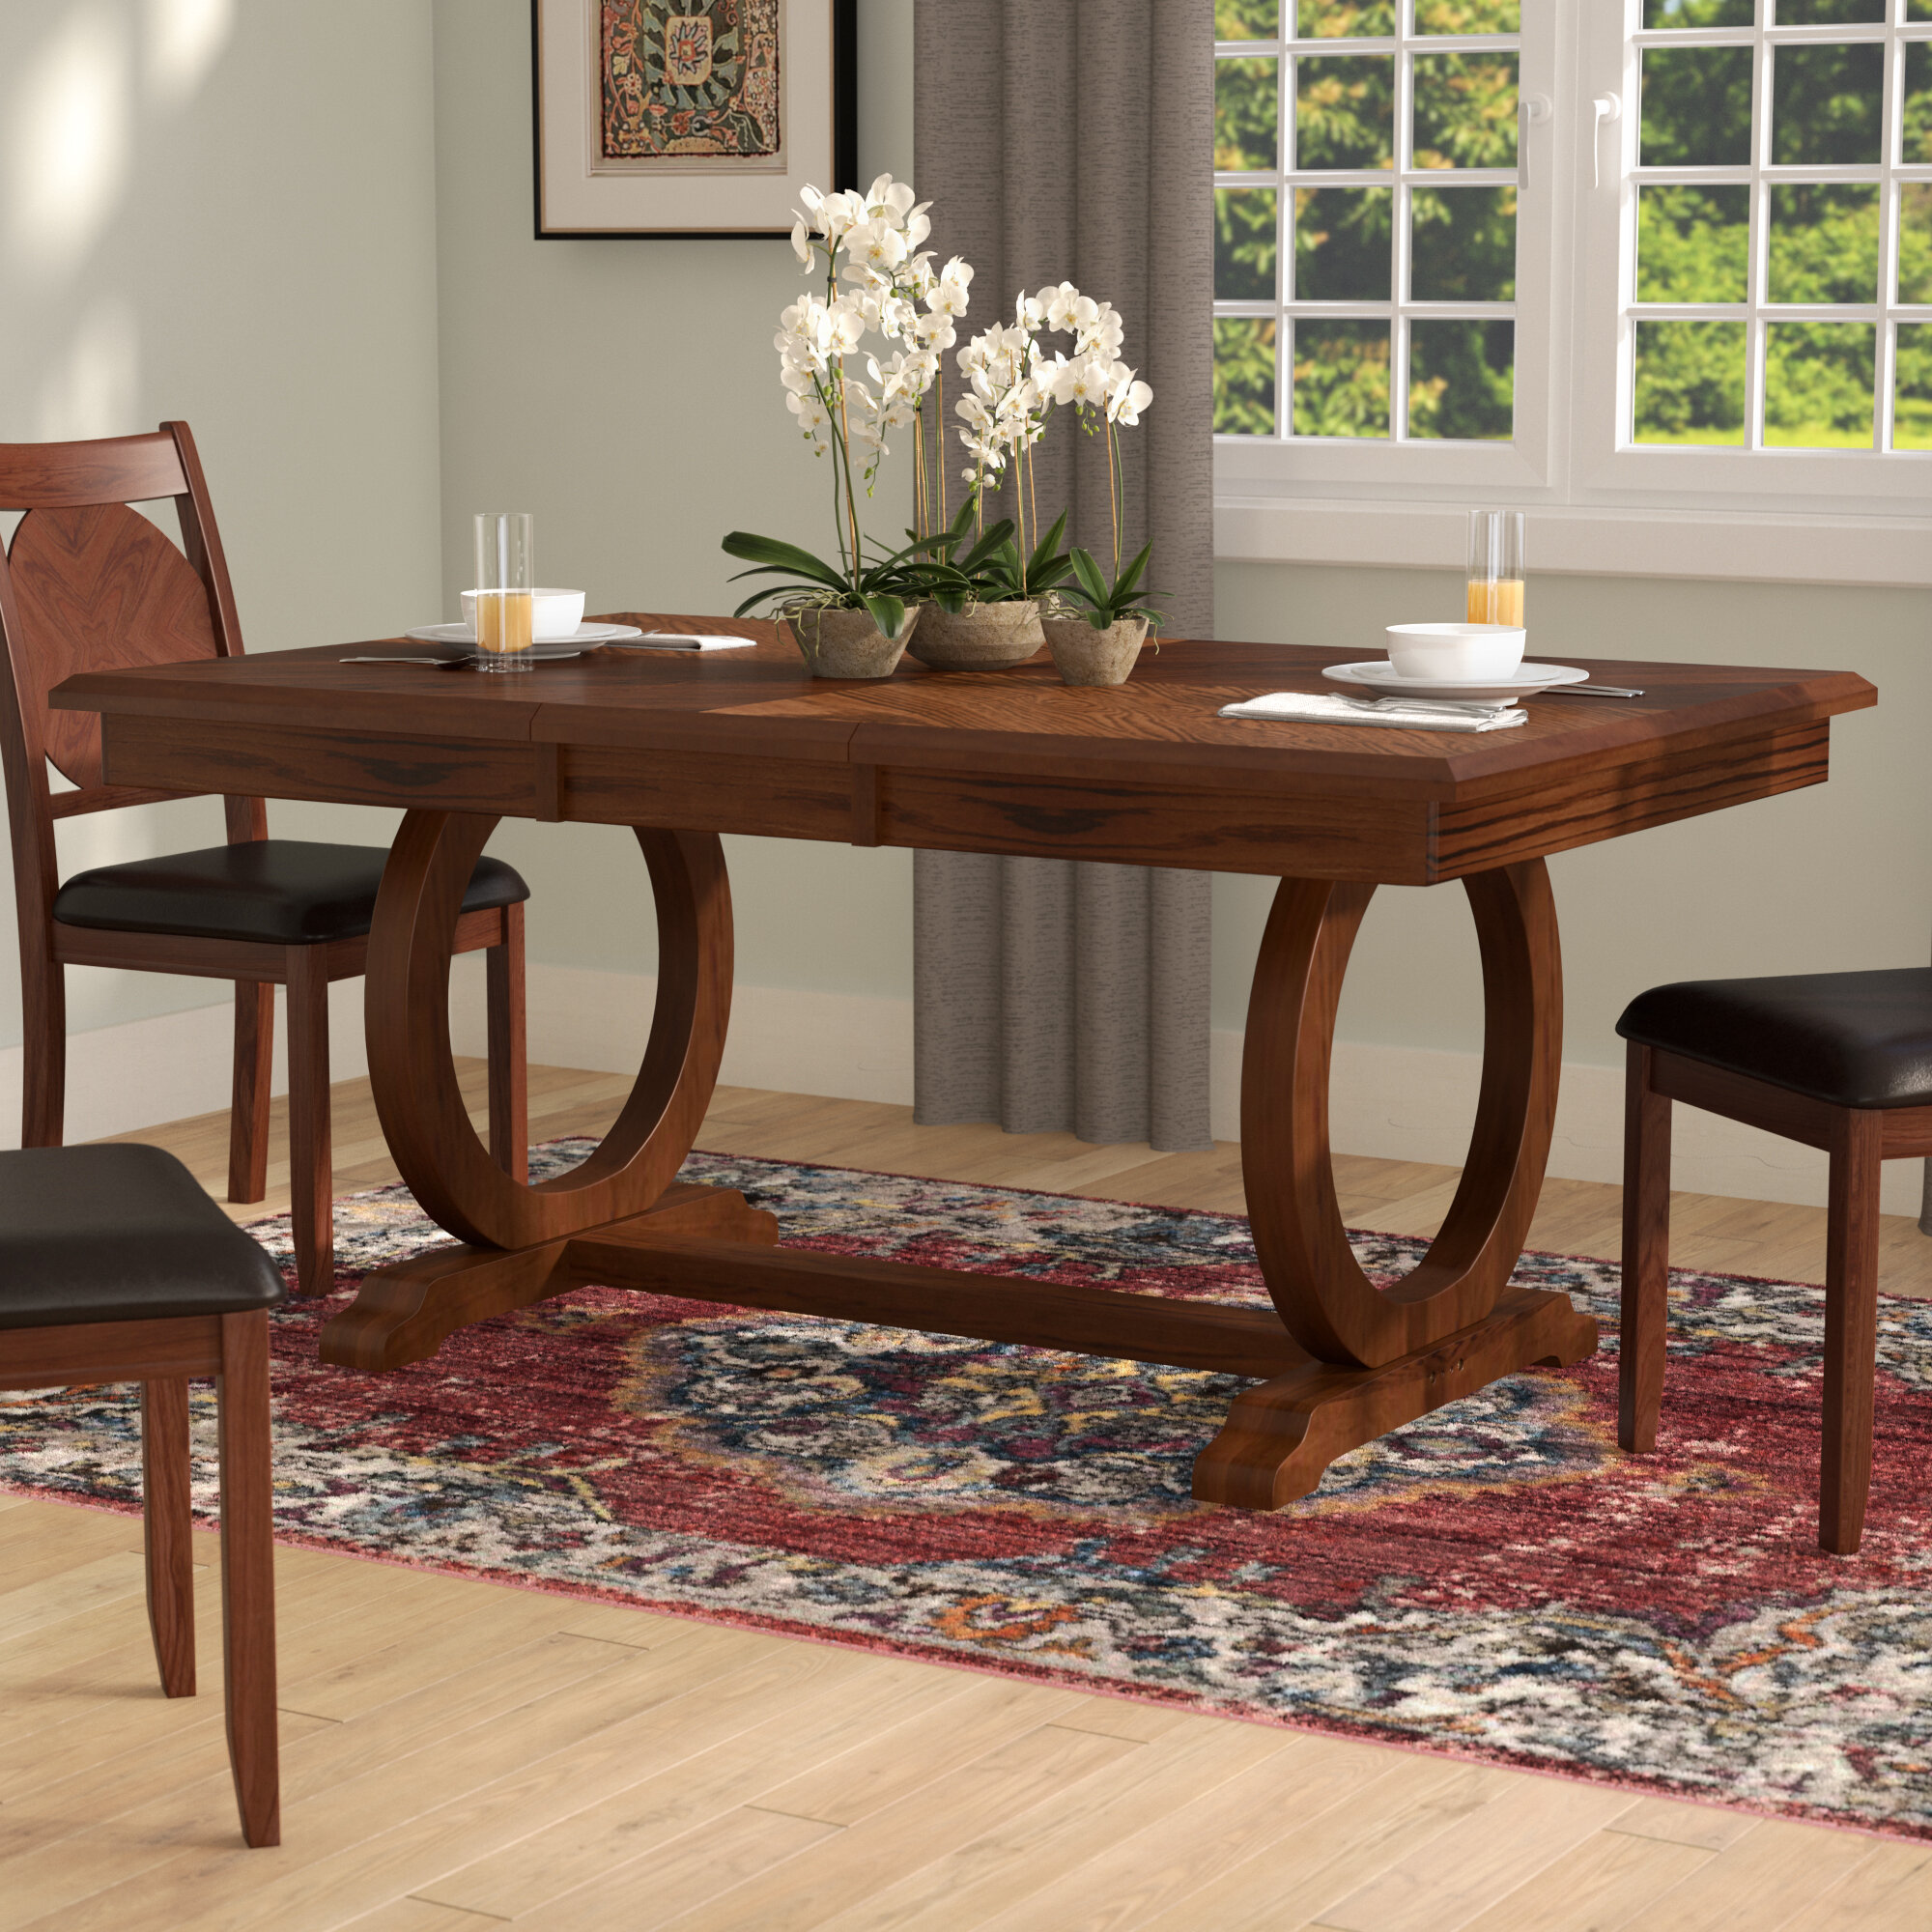 World Menagerie Kapoor Extendable Dining Table Reviews Wayfair - Extendable beech dining table